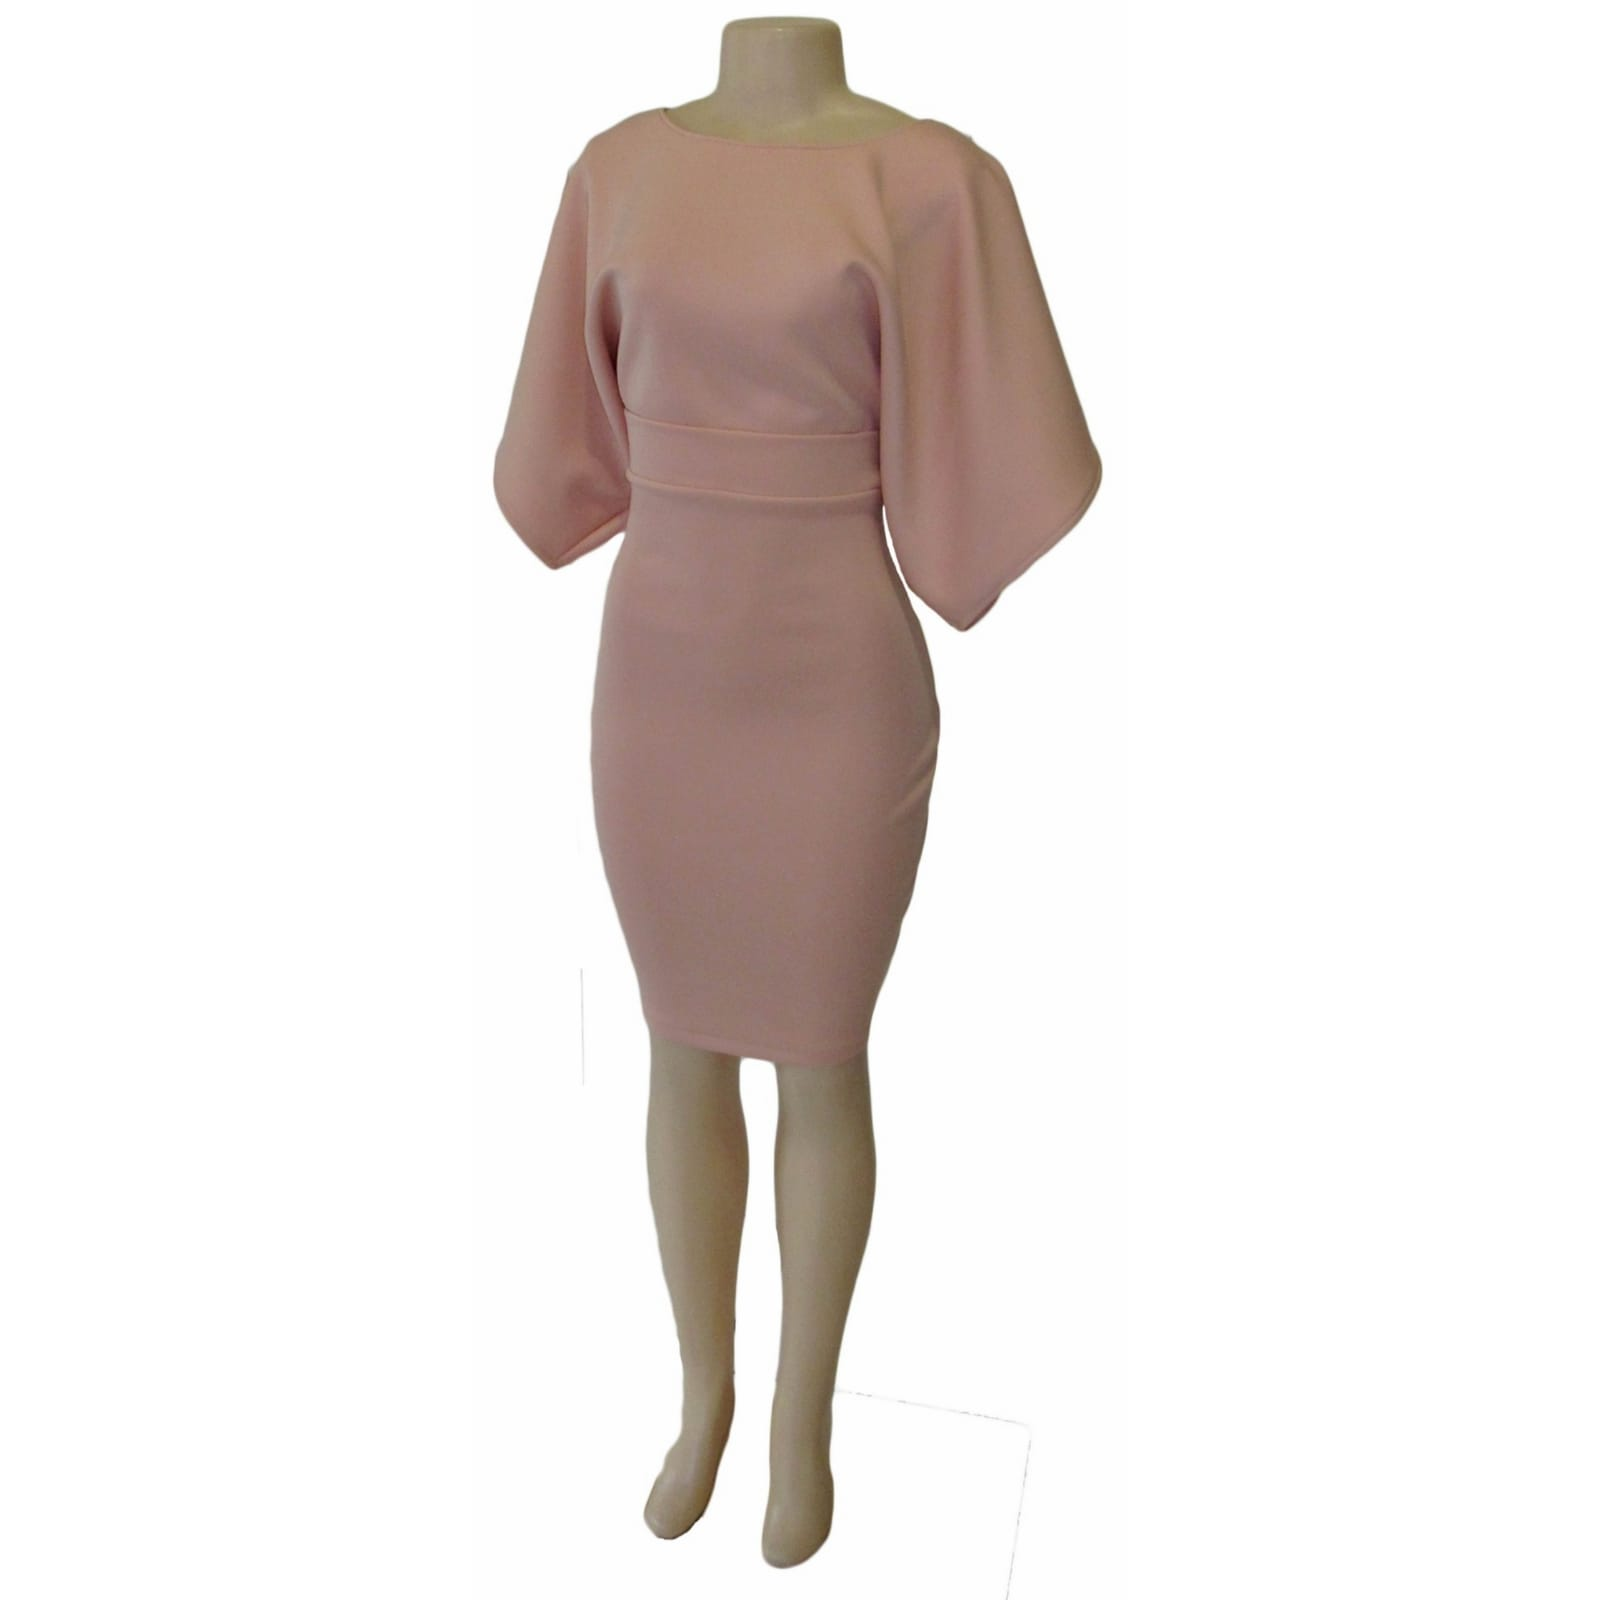 Dusty pink smart casual knee length dress 5 dusty pink smart casual knee length dress with wide short sleeves and fitted hip area creating a mini skirt look. With a belt